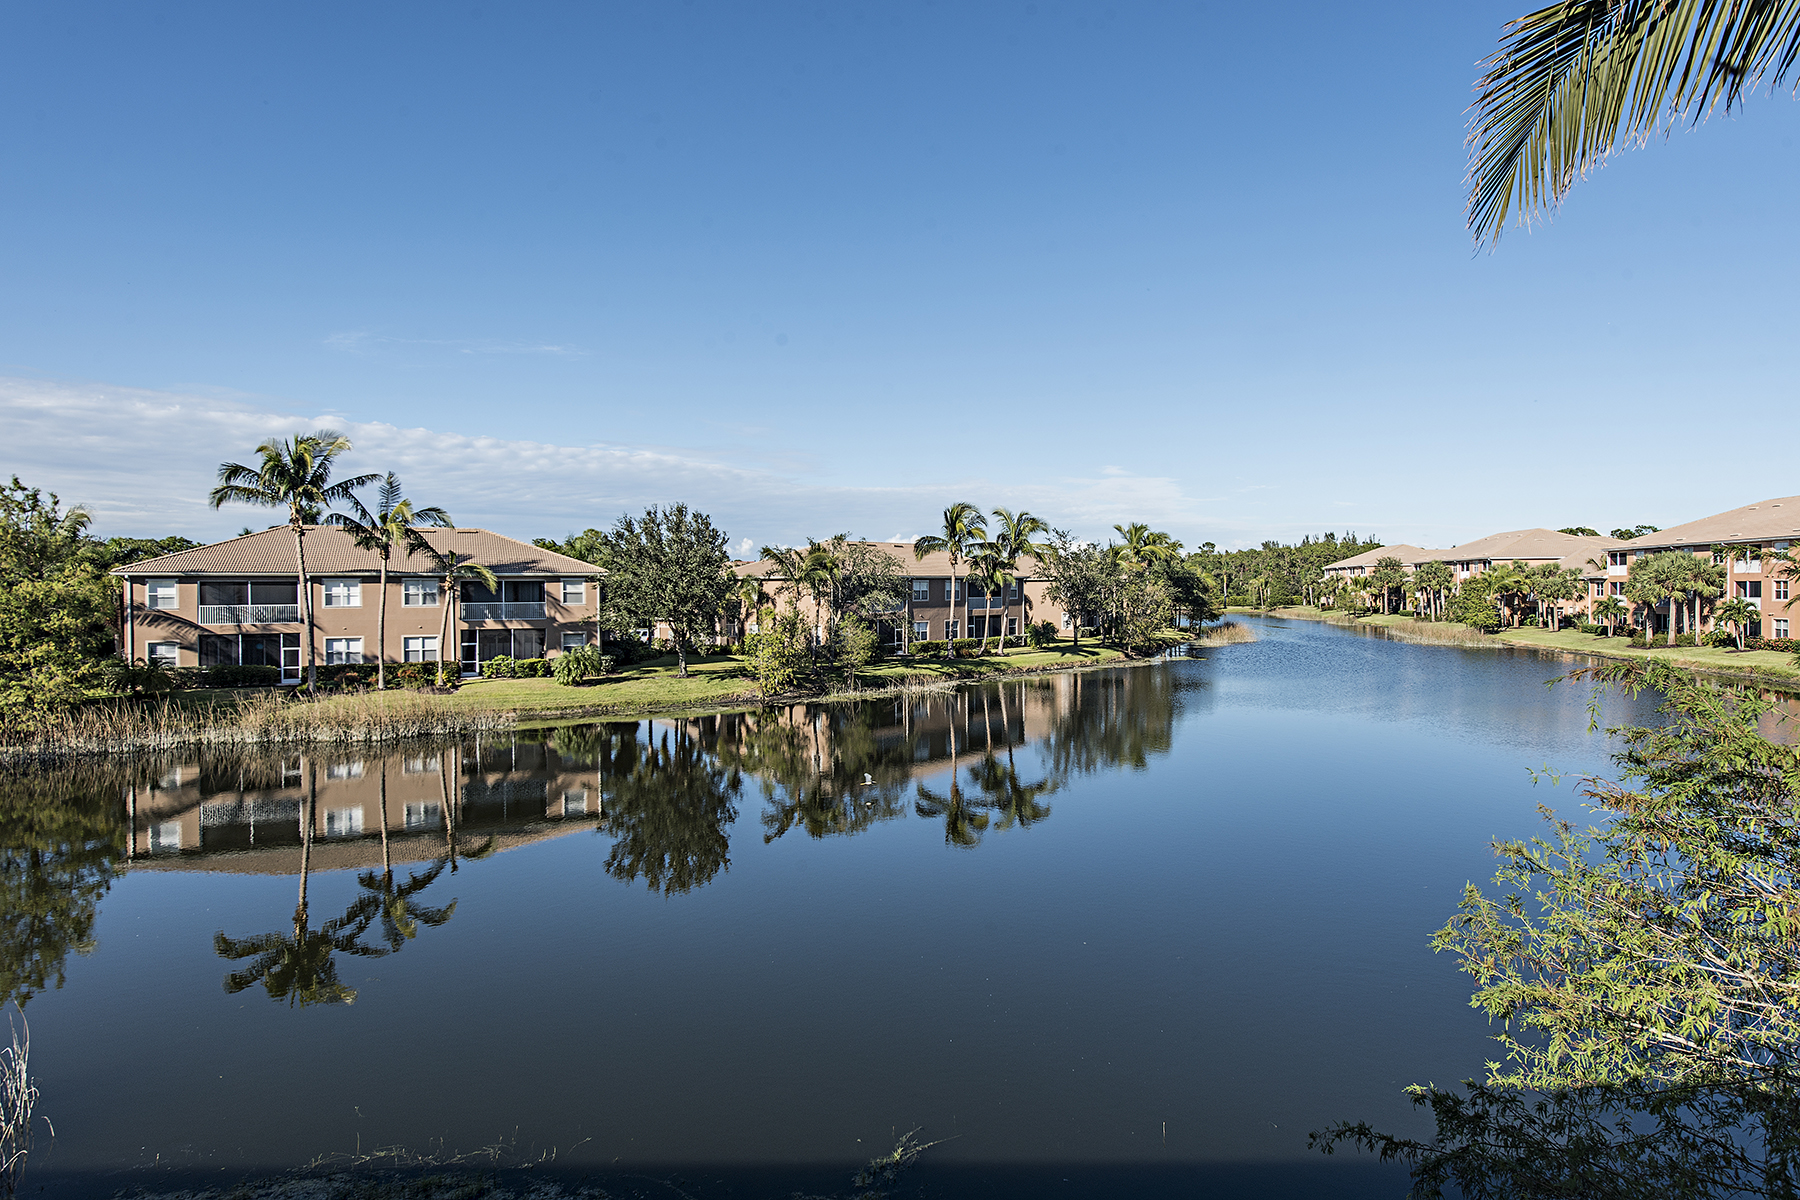 Condominium for Sale at 9651 Spanish Moss Way , 4124, Bonita Springs, FL 3 9651 Spanish Moss Way 4124, Bonita Springs, Florida 34135 United States